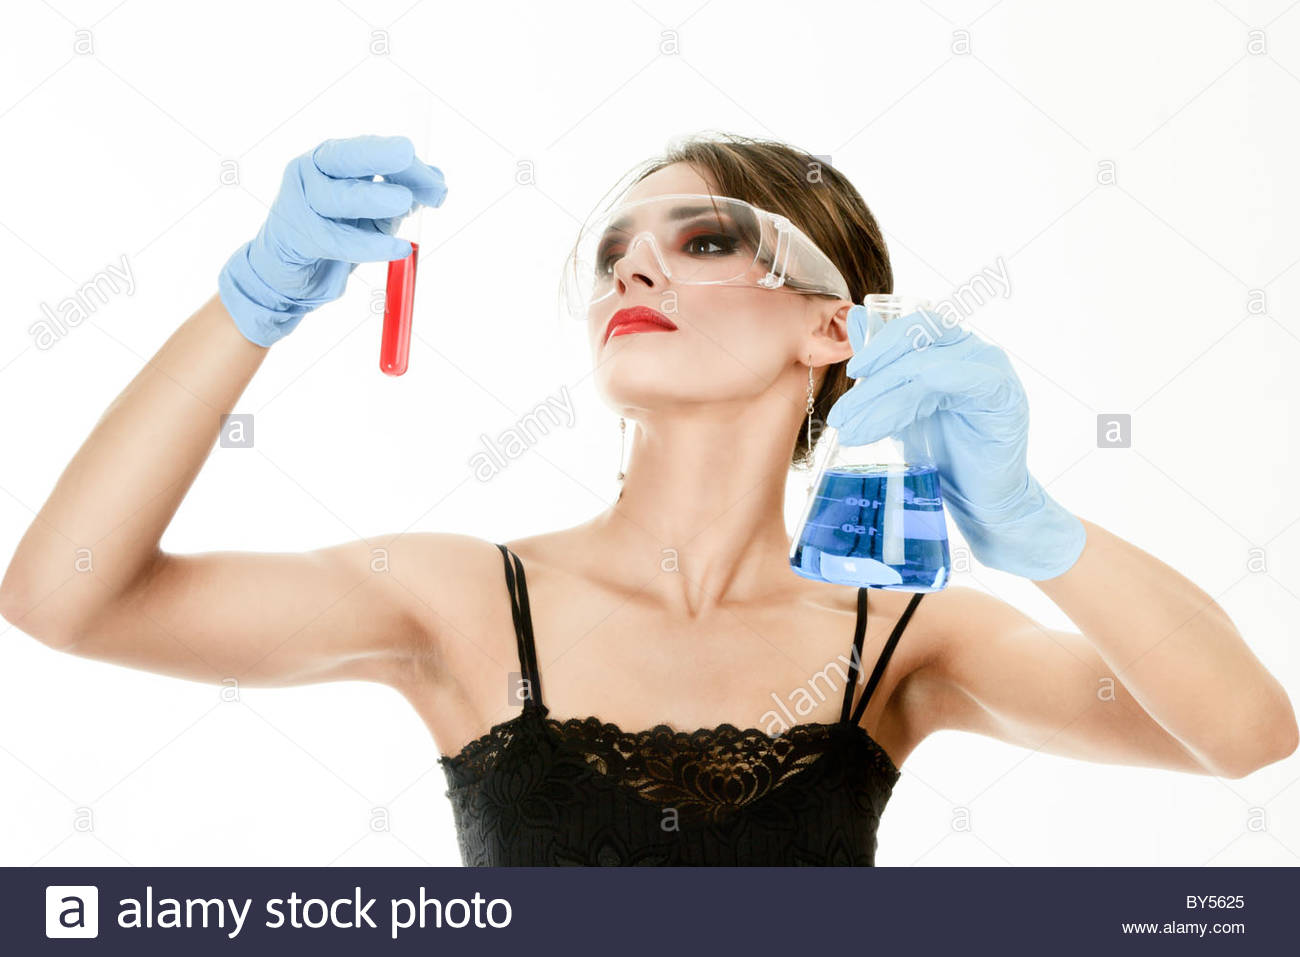 Young woman holding test tubes in hands during scientific experiment Stock Photo